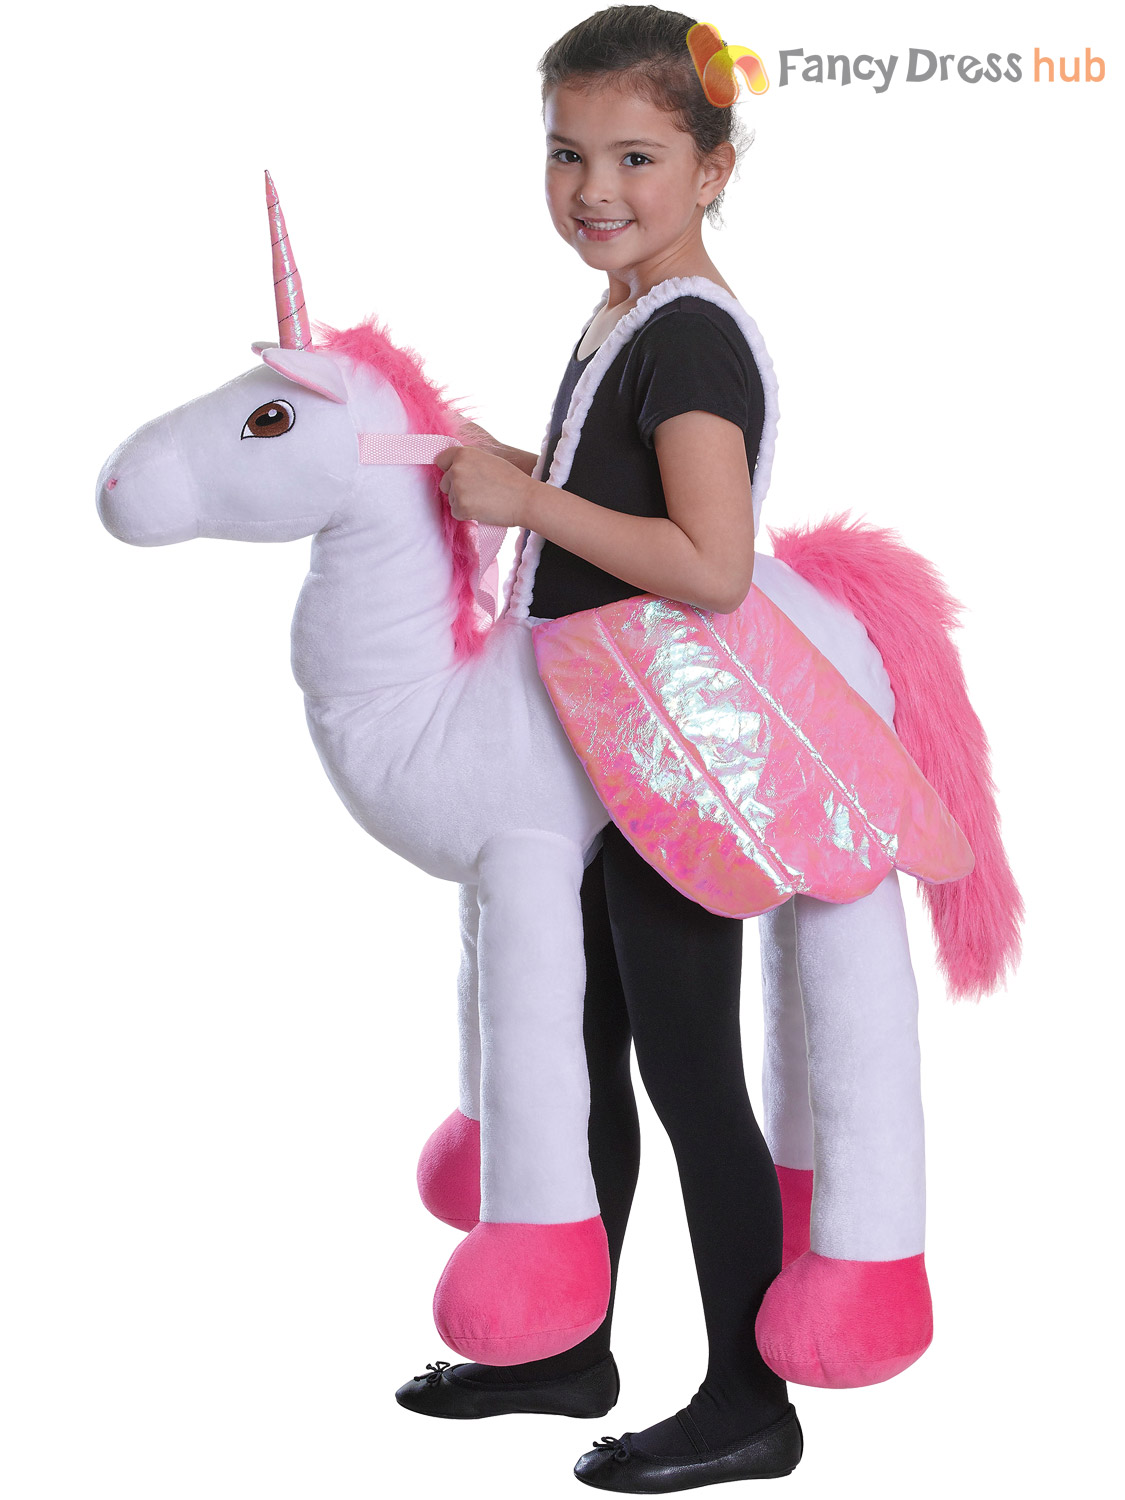 Products Chorade Halloween Inflatable Unicorn Costume Adult Fancy Costumes Riding Unicorn. Chorade Halloween Inflatable Unicorn Costume Adult Fancy Costumes Riding Unicorn if you really want to steal the show at a fancy dress party, then this costume is the way to go. Simply step inside the costume and click your battery belt clip to turn.